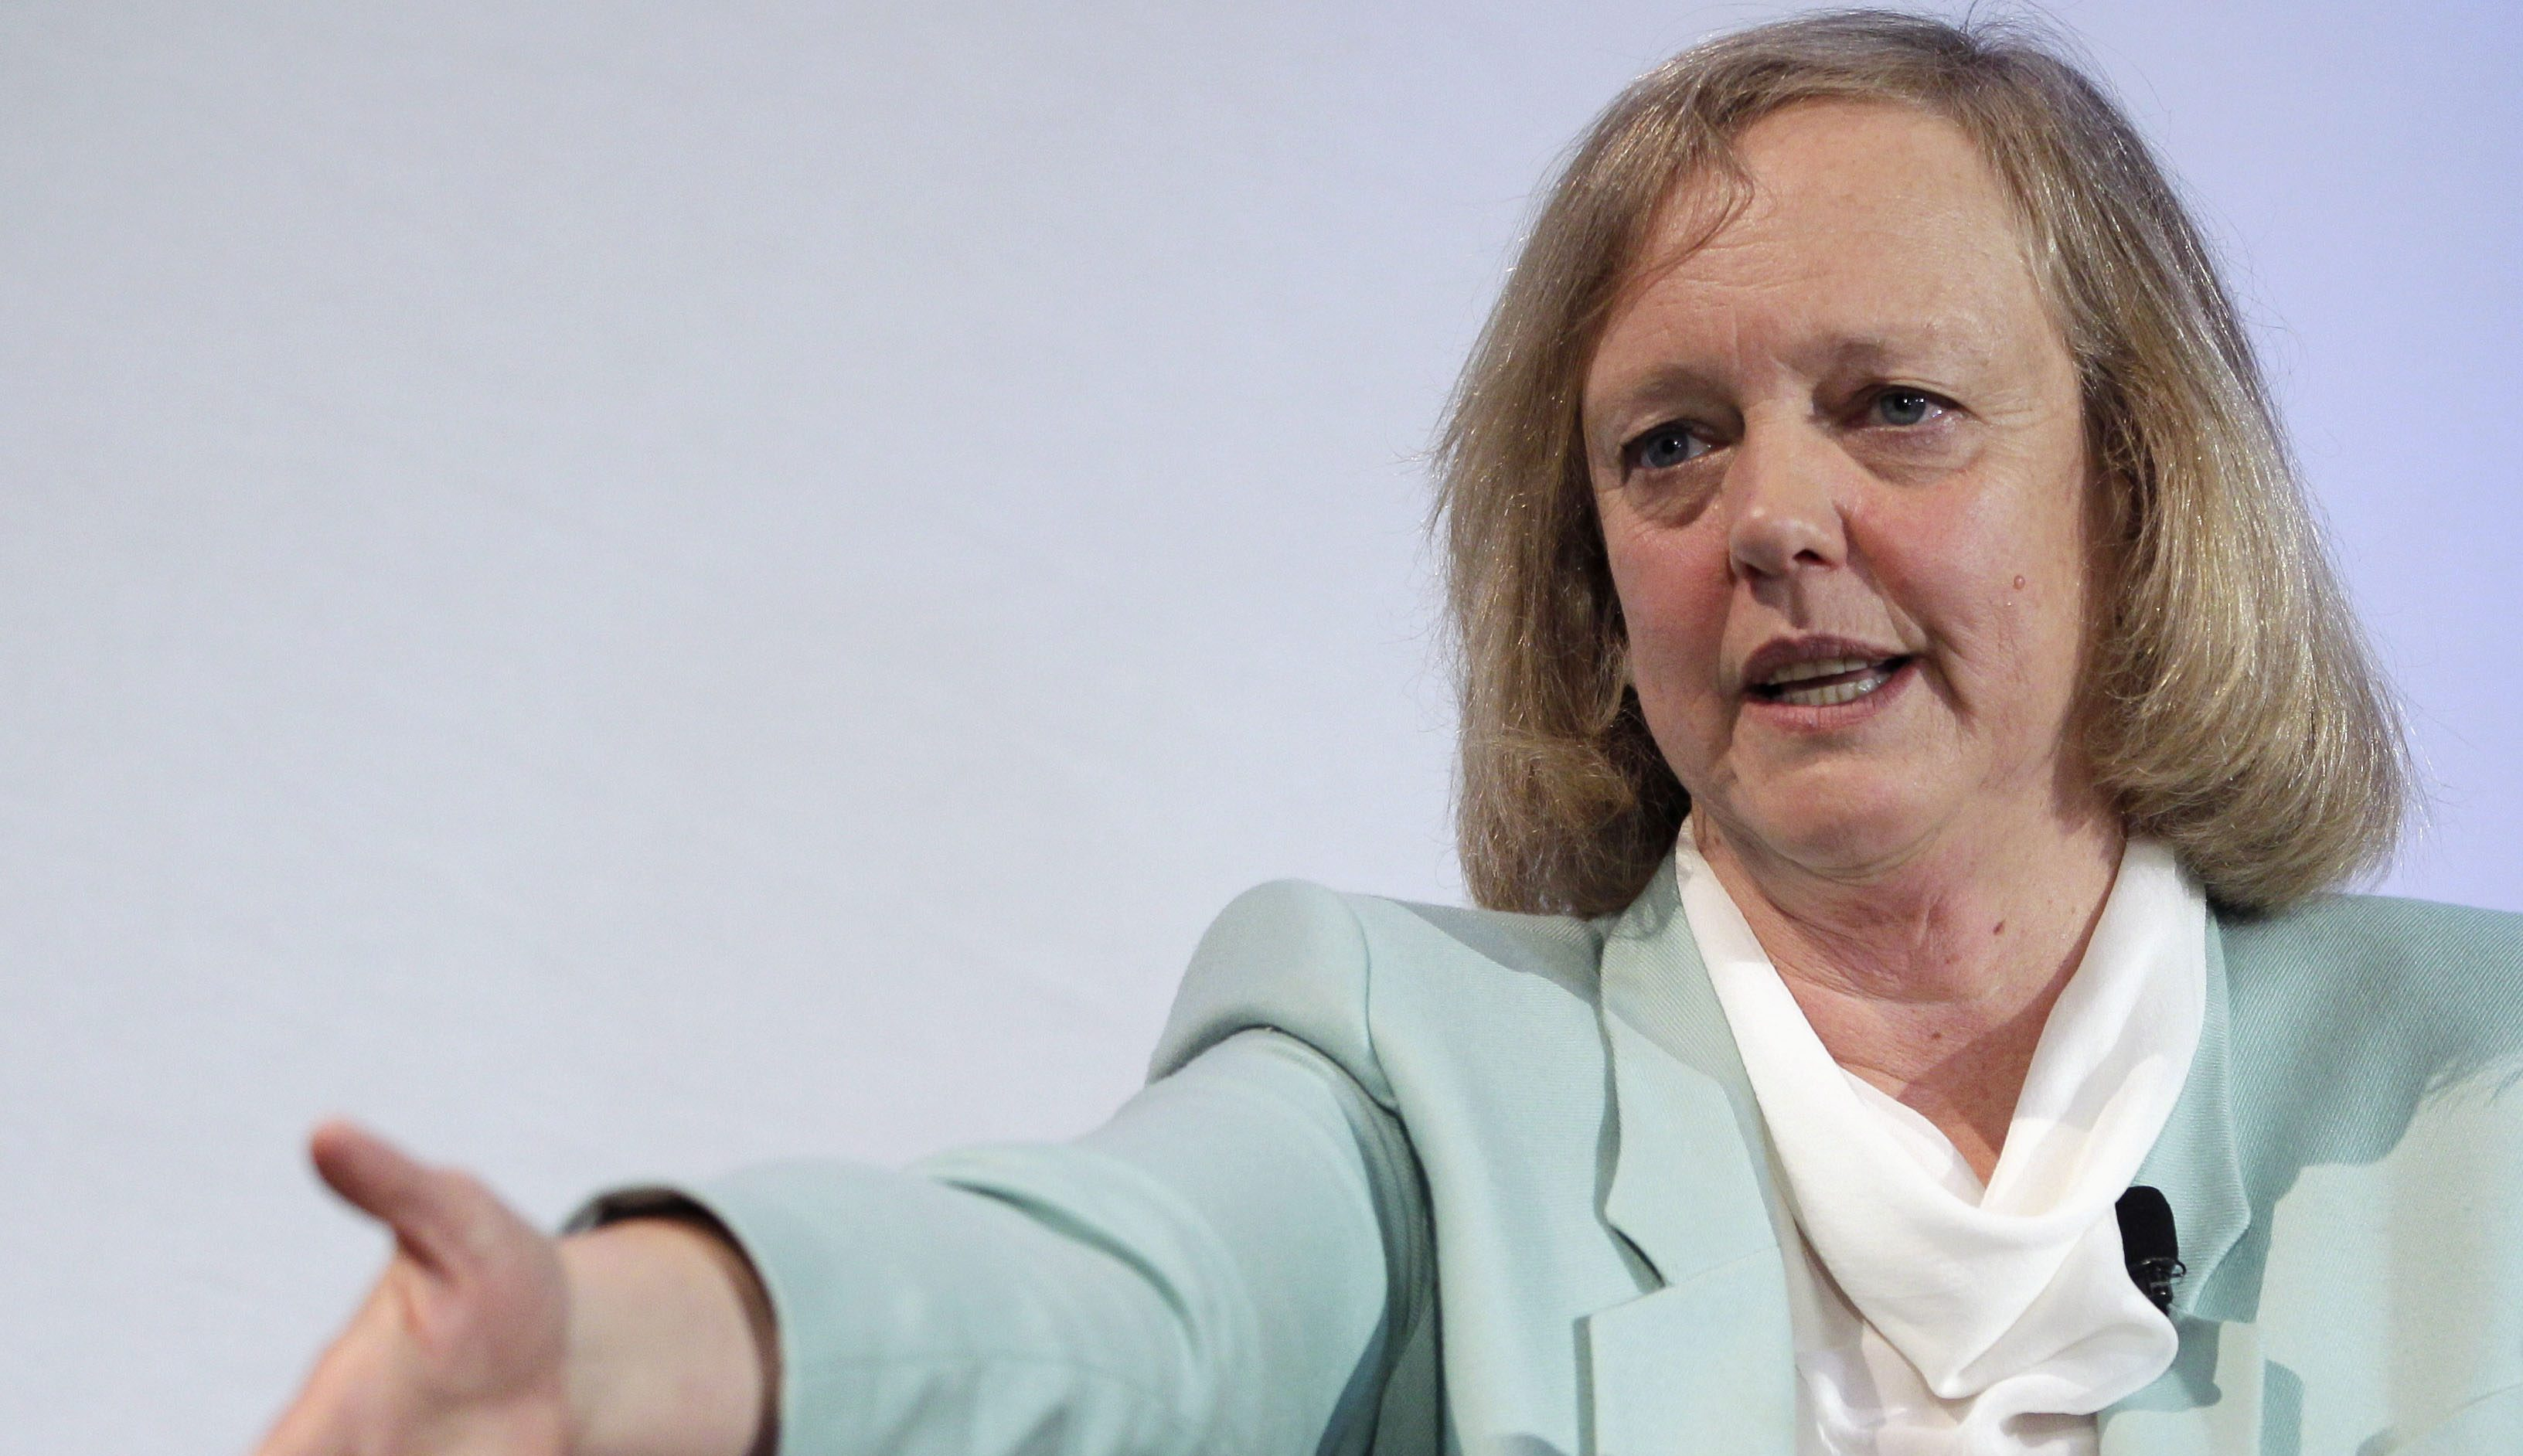 Hewlett Packard CEO and President Meg Whitman speaks at a conference on the Stanford University campus in Palo Alto, Calif.